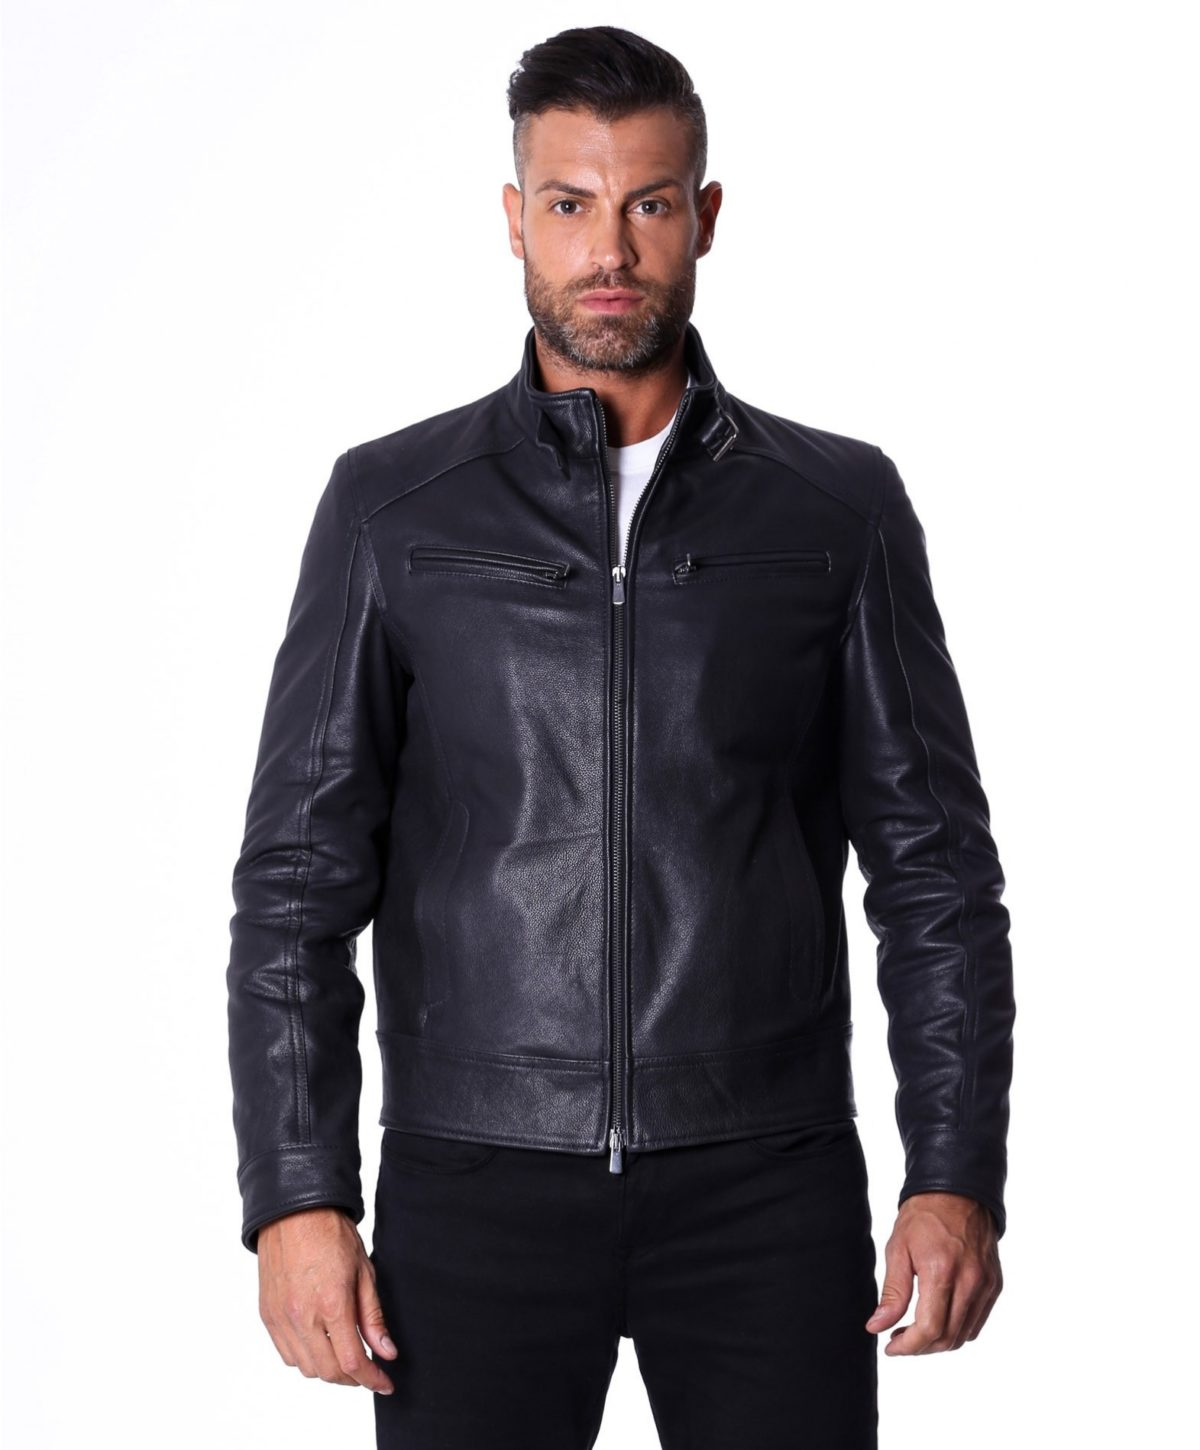 men-s-leather-jacket-genuine-lamb-leather-biker-buckle-collar-black-color-max